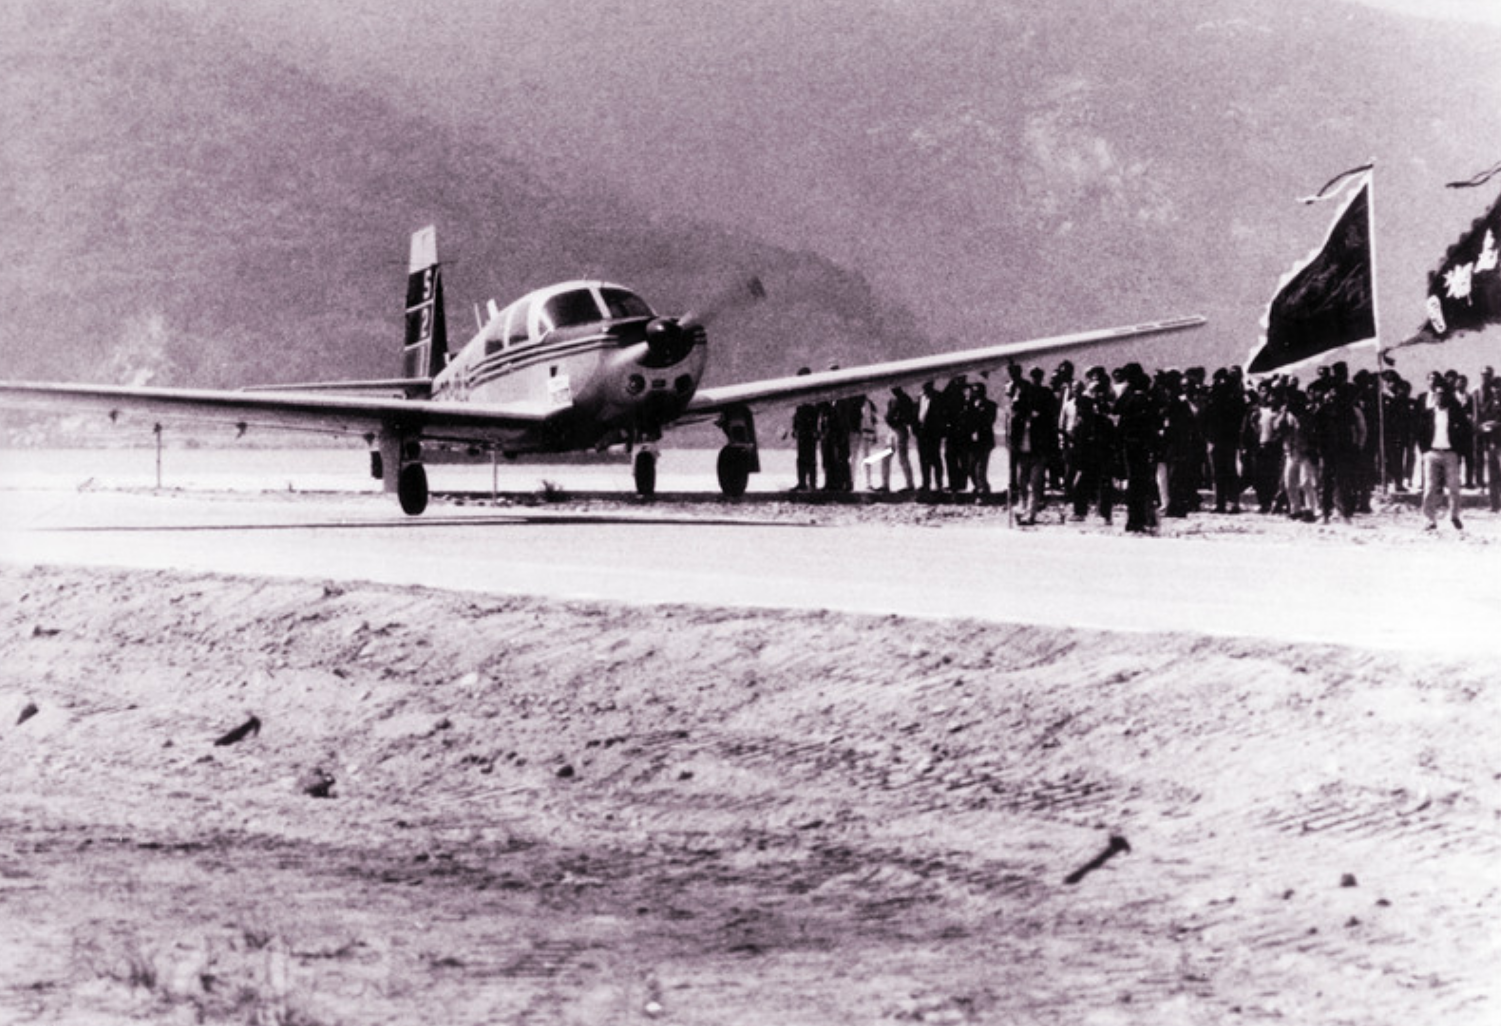 Sagres Aircraft landing in Coloane Macau from Lisboa in 1987